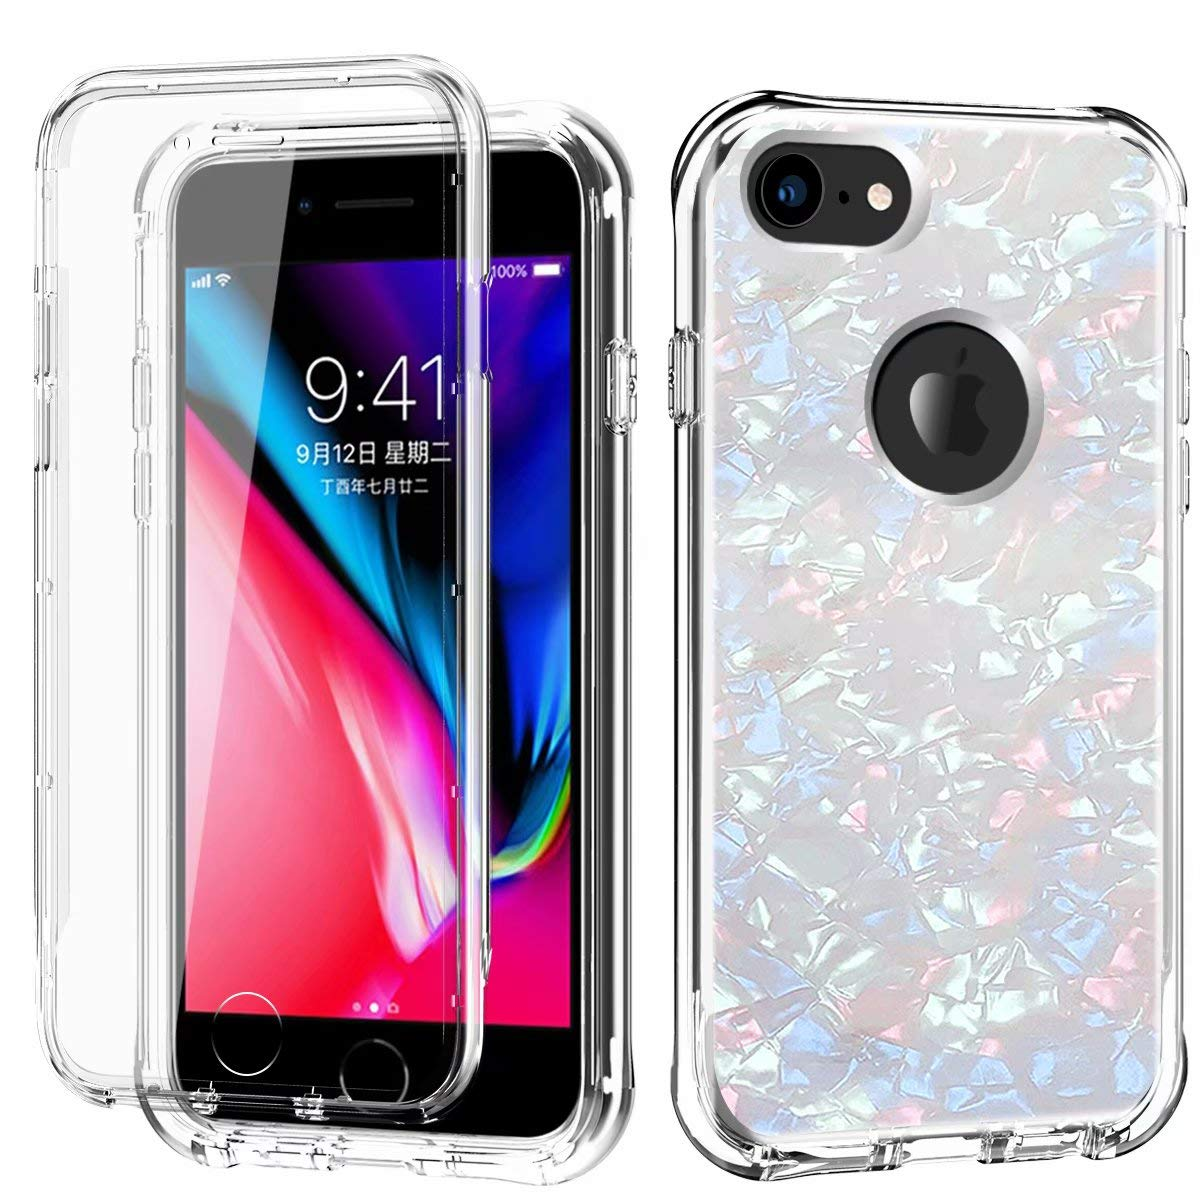 iPhone 6S Plus / 6 Plus Case, Ranyi Full Body Protective Crystal Transparent Cover Hybrid Bumper [Built in Screen Protector] Flexible Resilient TPU Case for 5.5 Inch iPhone 6S Plus /6 Plus (White) by Ranyi